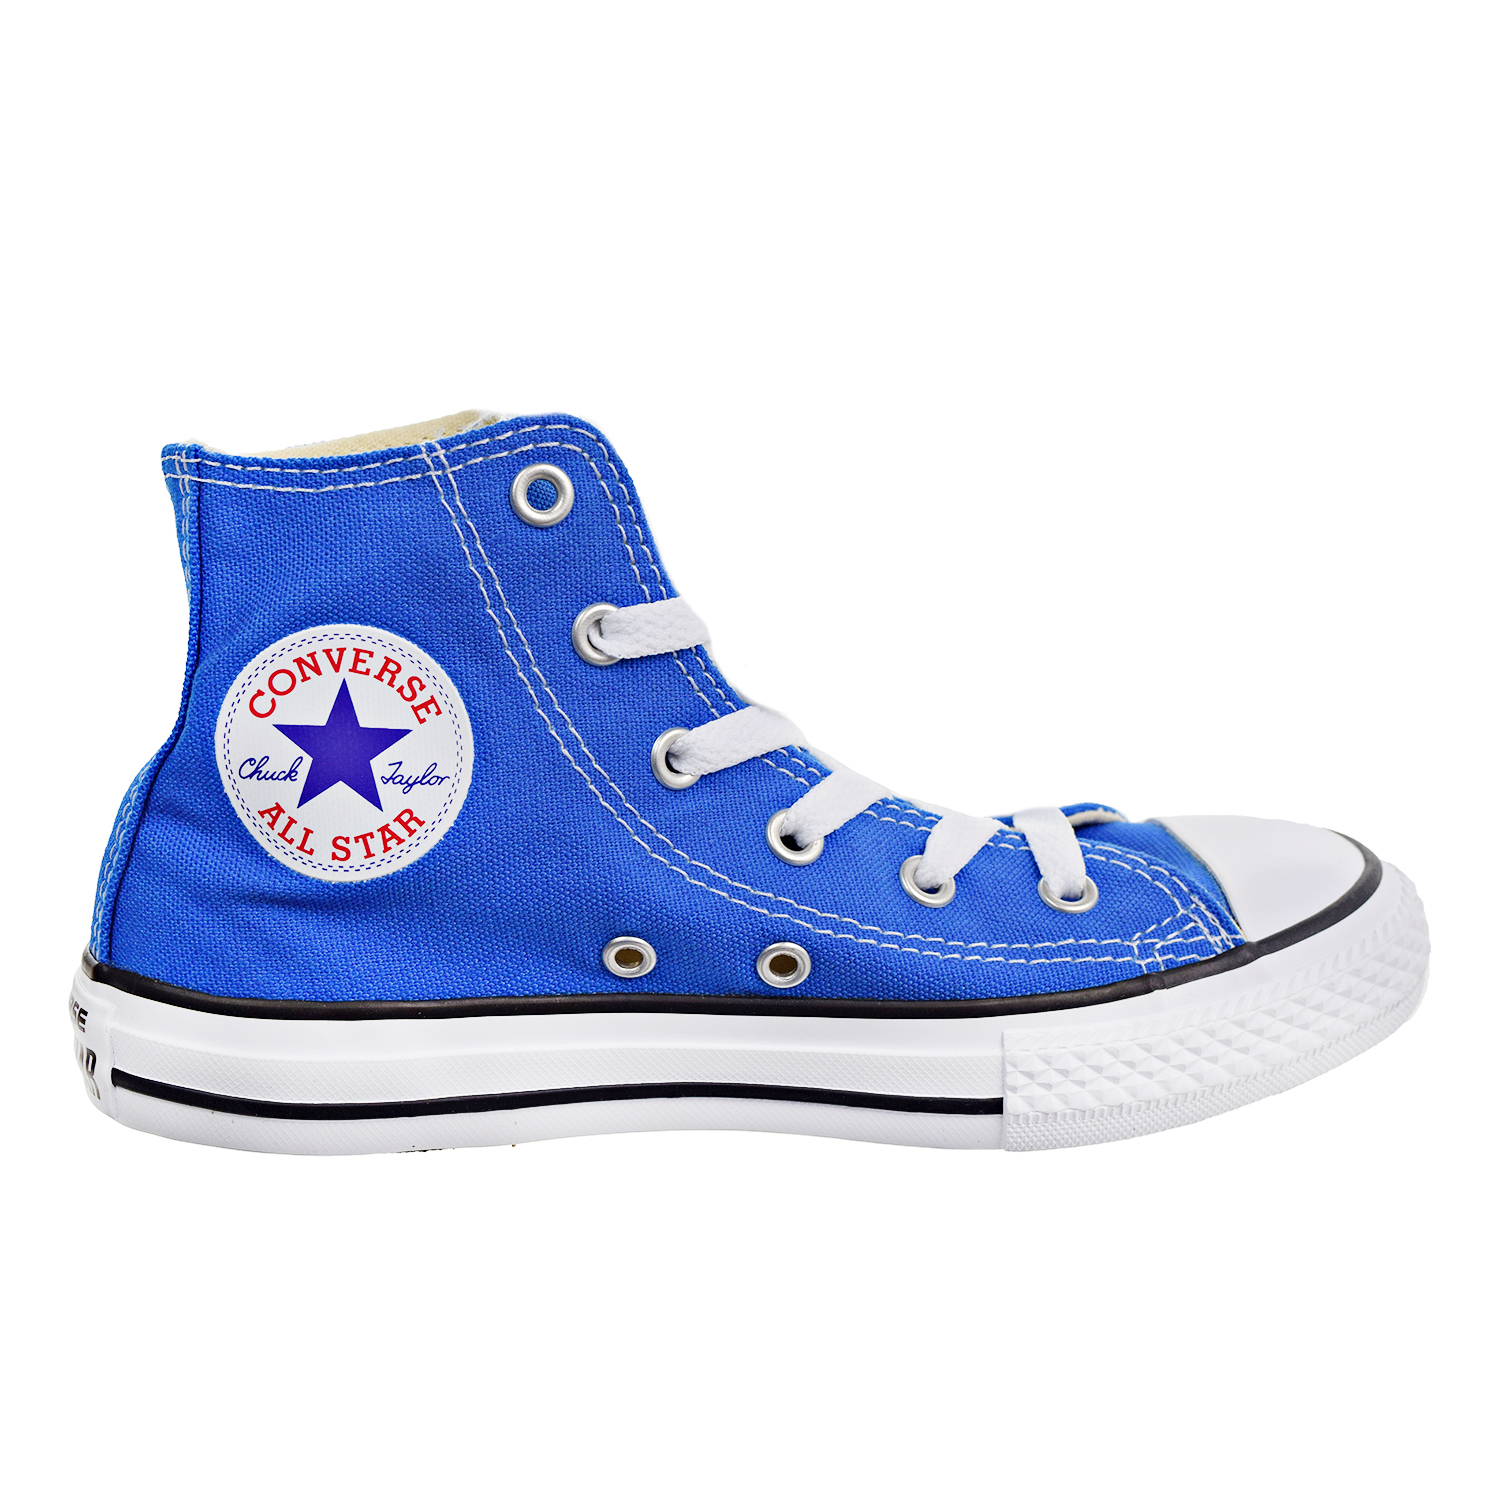 Converse Chuck Taylor All Star Hi Top Preschool Unisex Casual Shoes Soar Blue 355566f by Converse